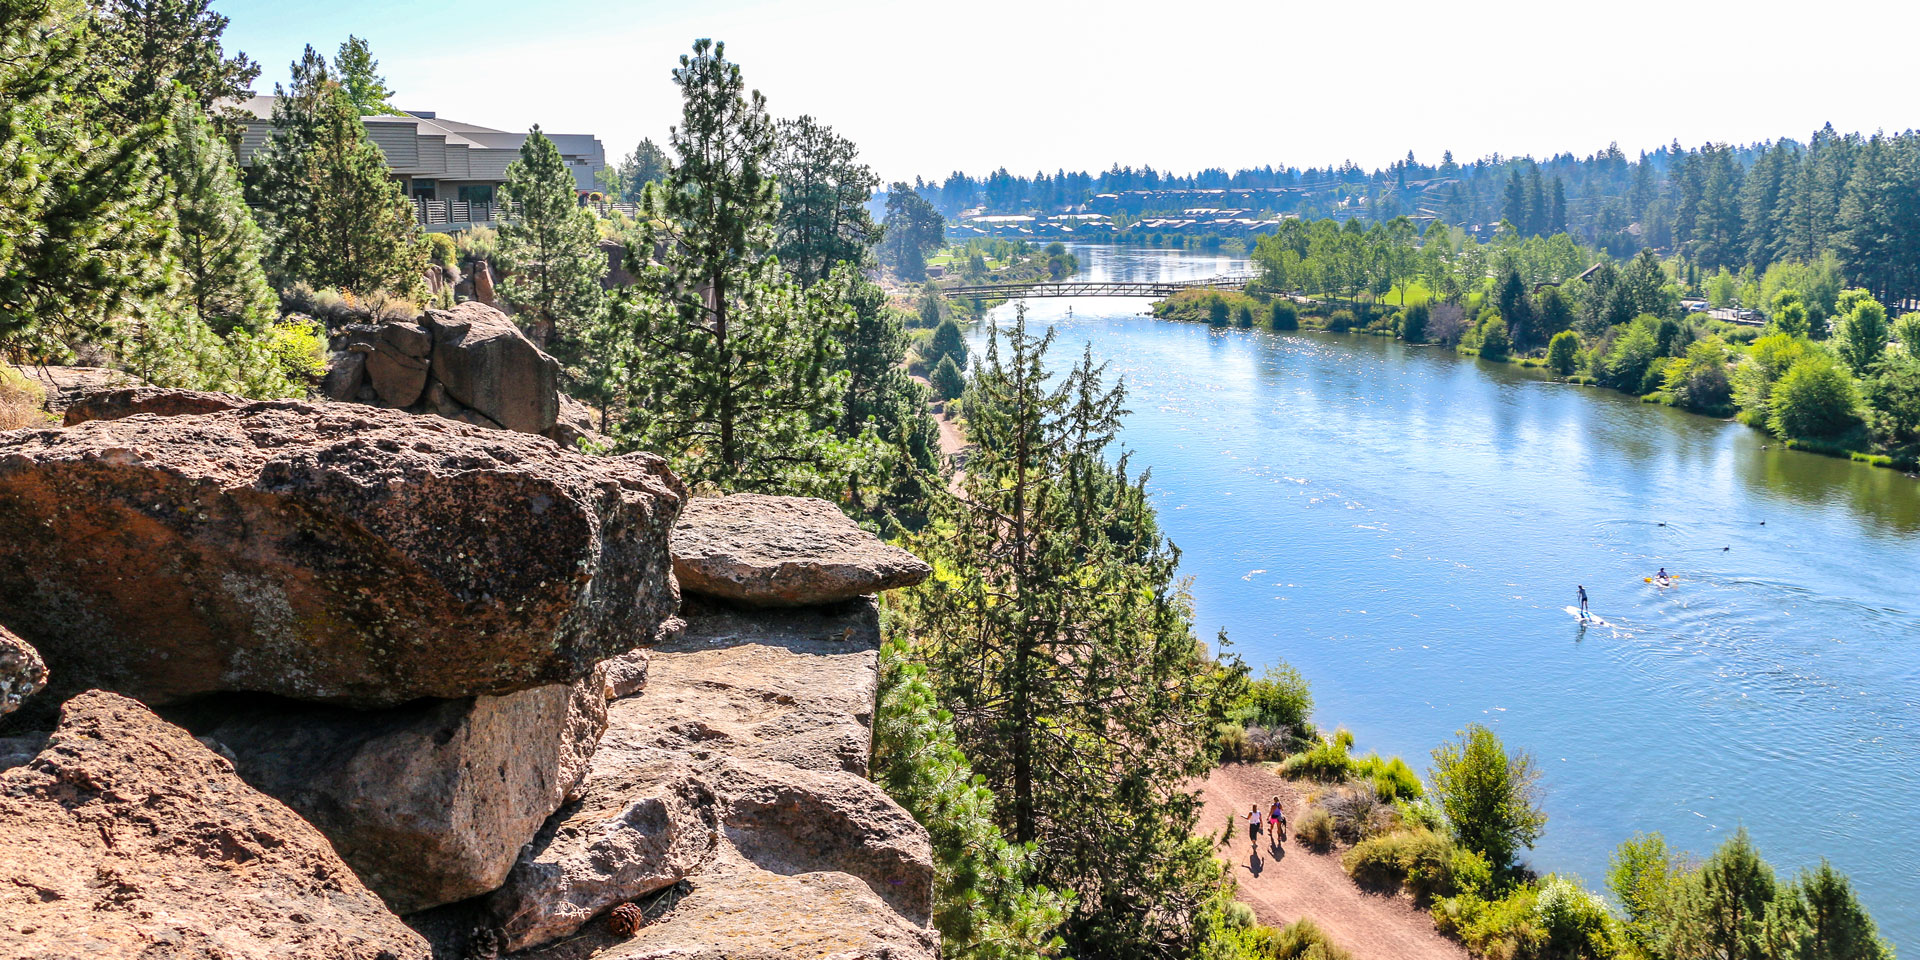 Deschutes River from cliffs above.